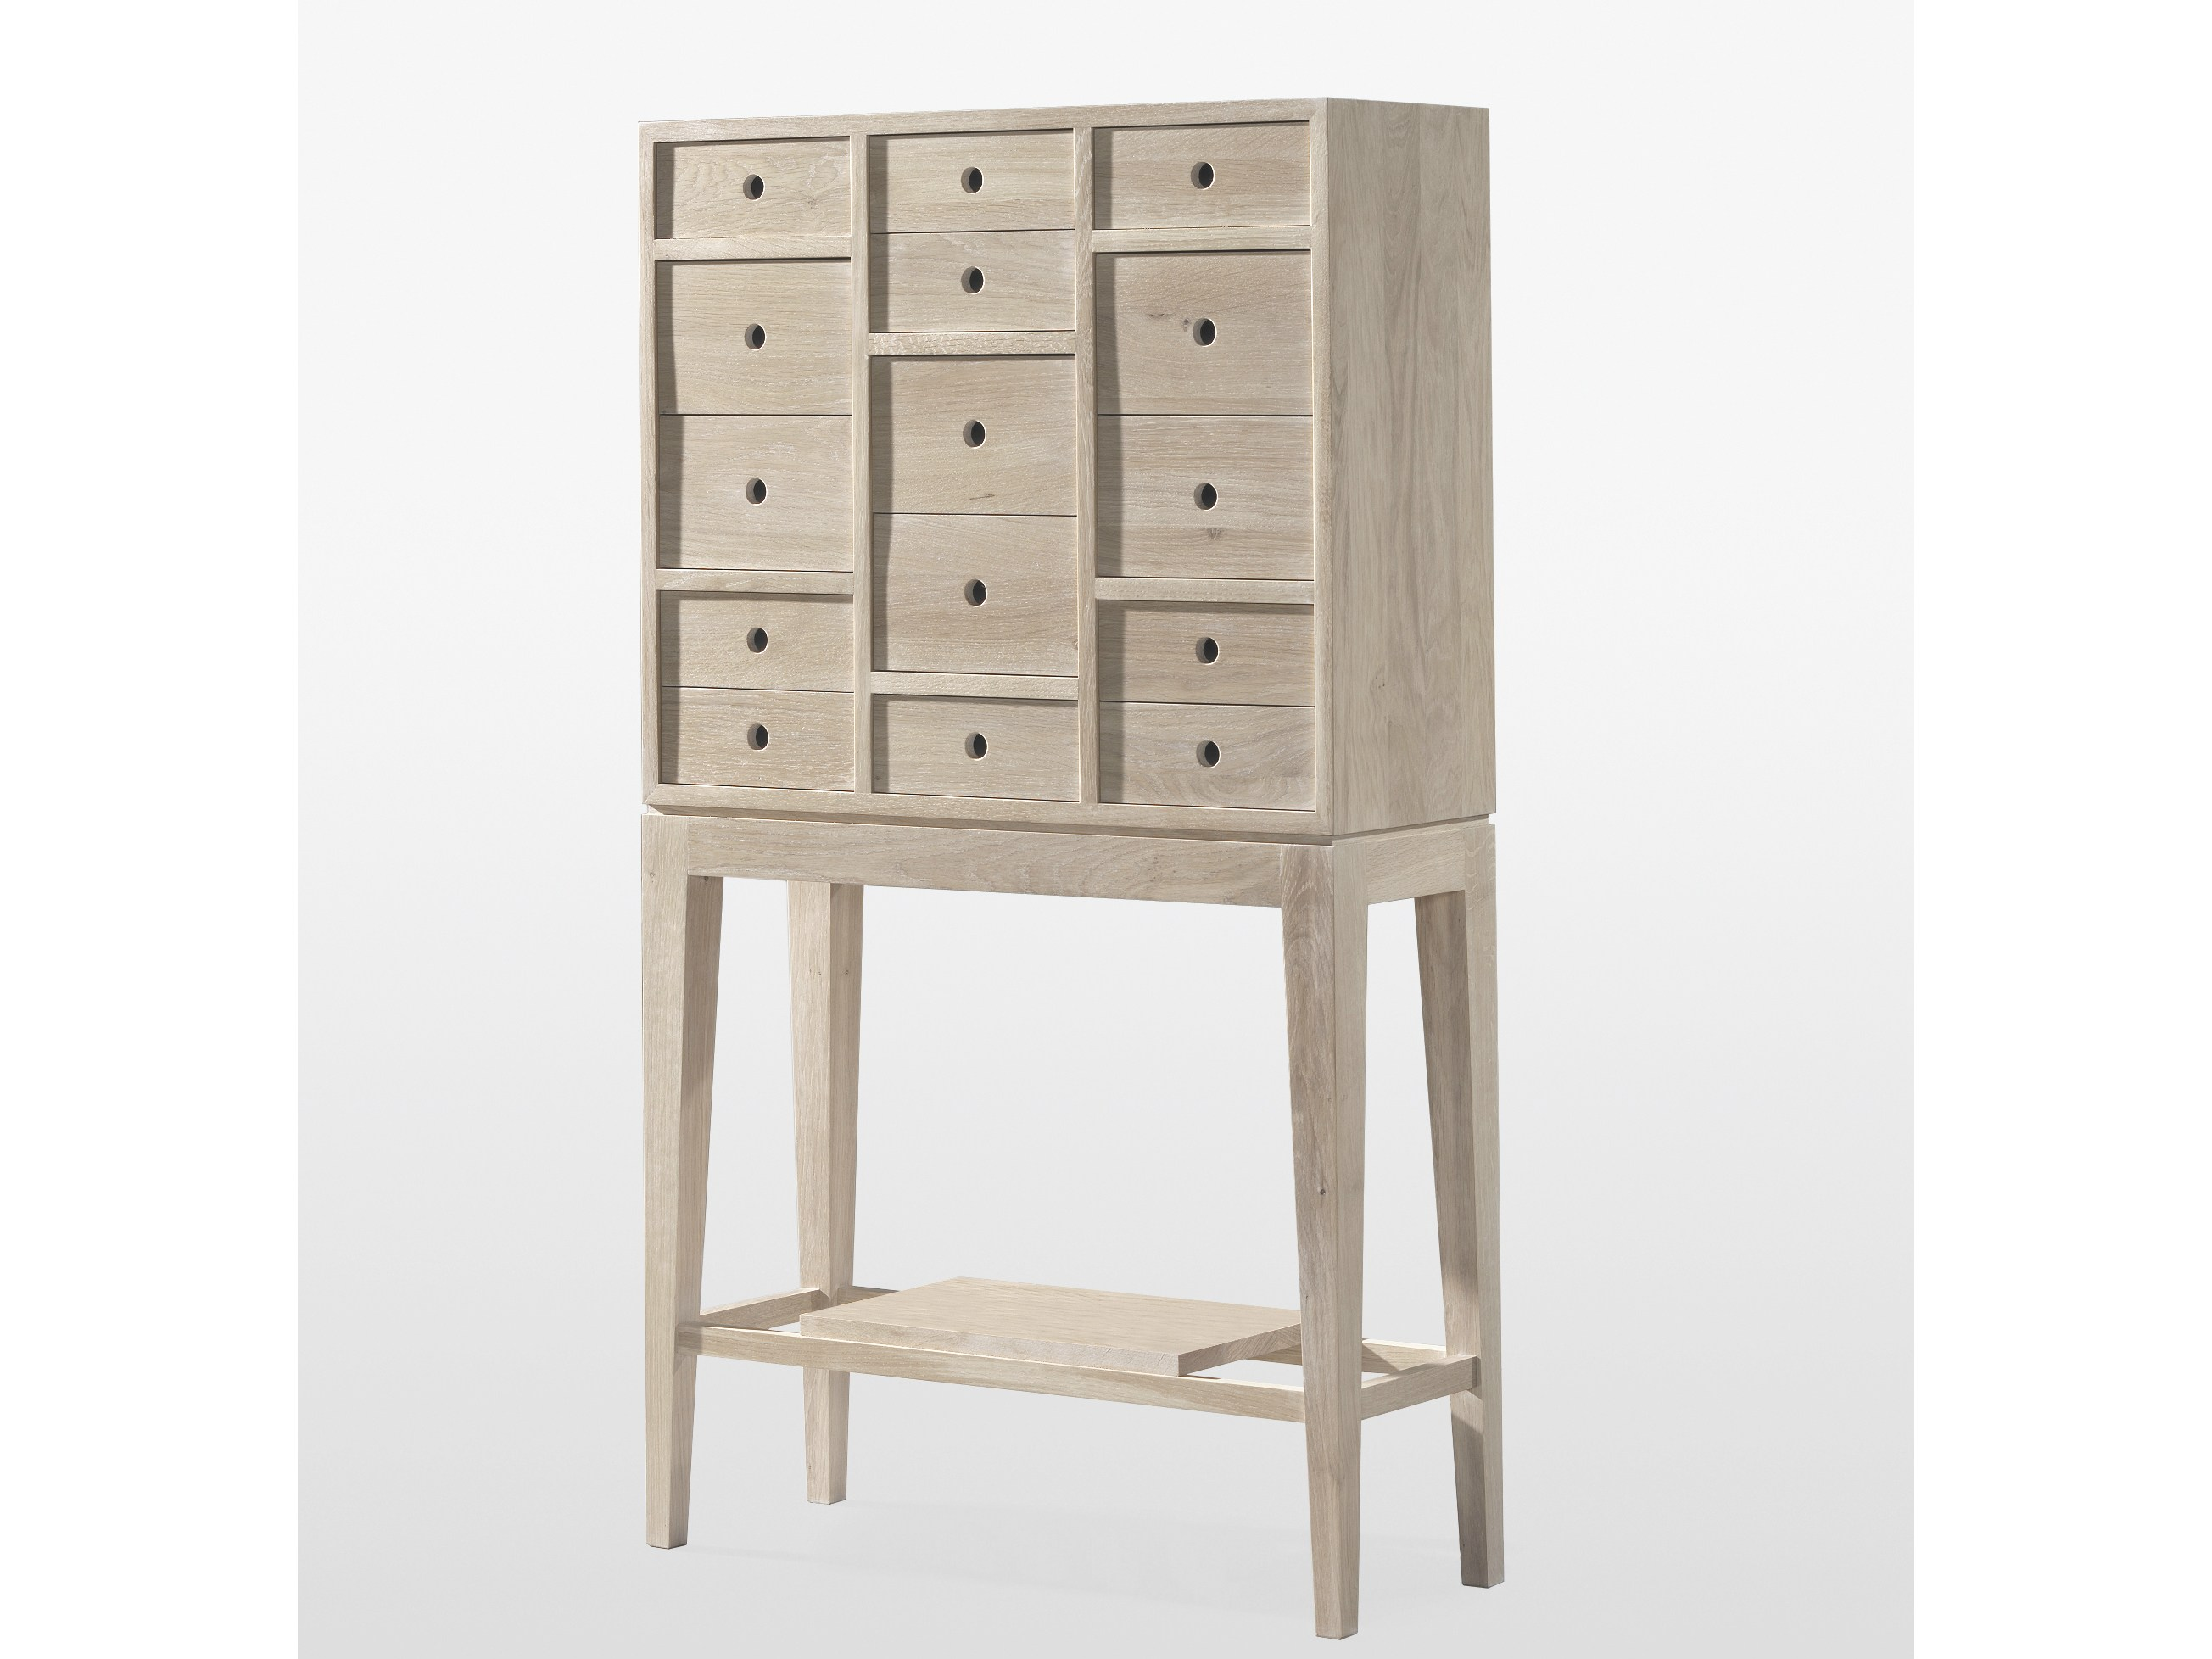 chiffonnier en bois massif contador by wewood design wewood design center. Black Bedroom Furniture Sets. Home Design Ideas